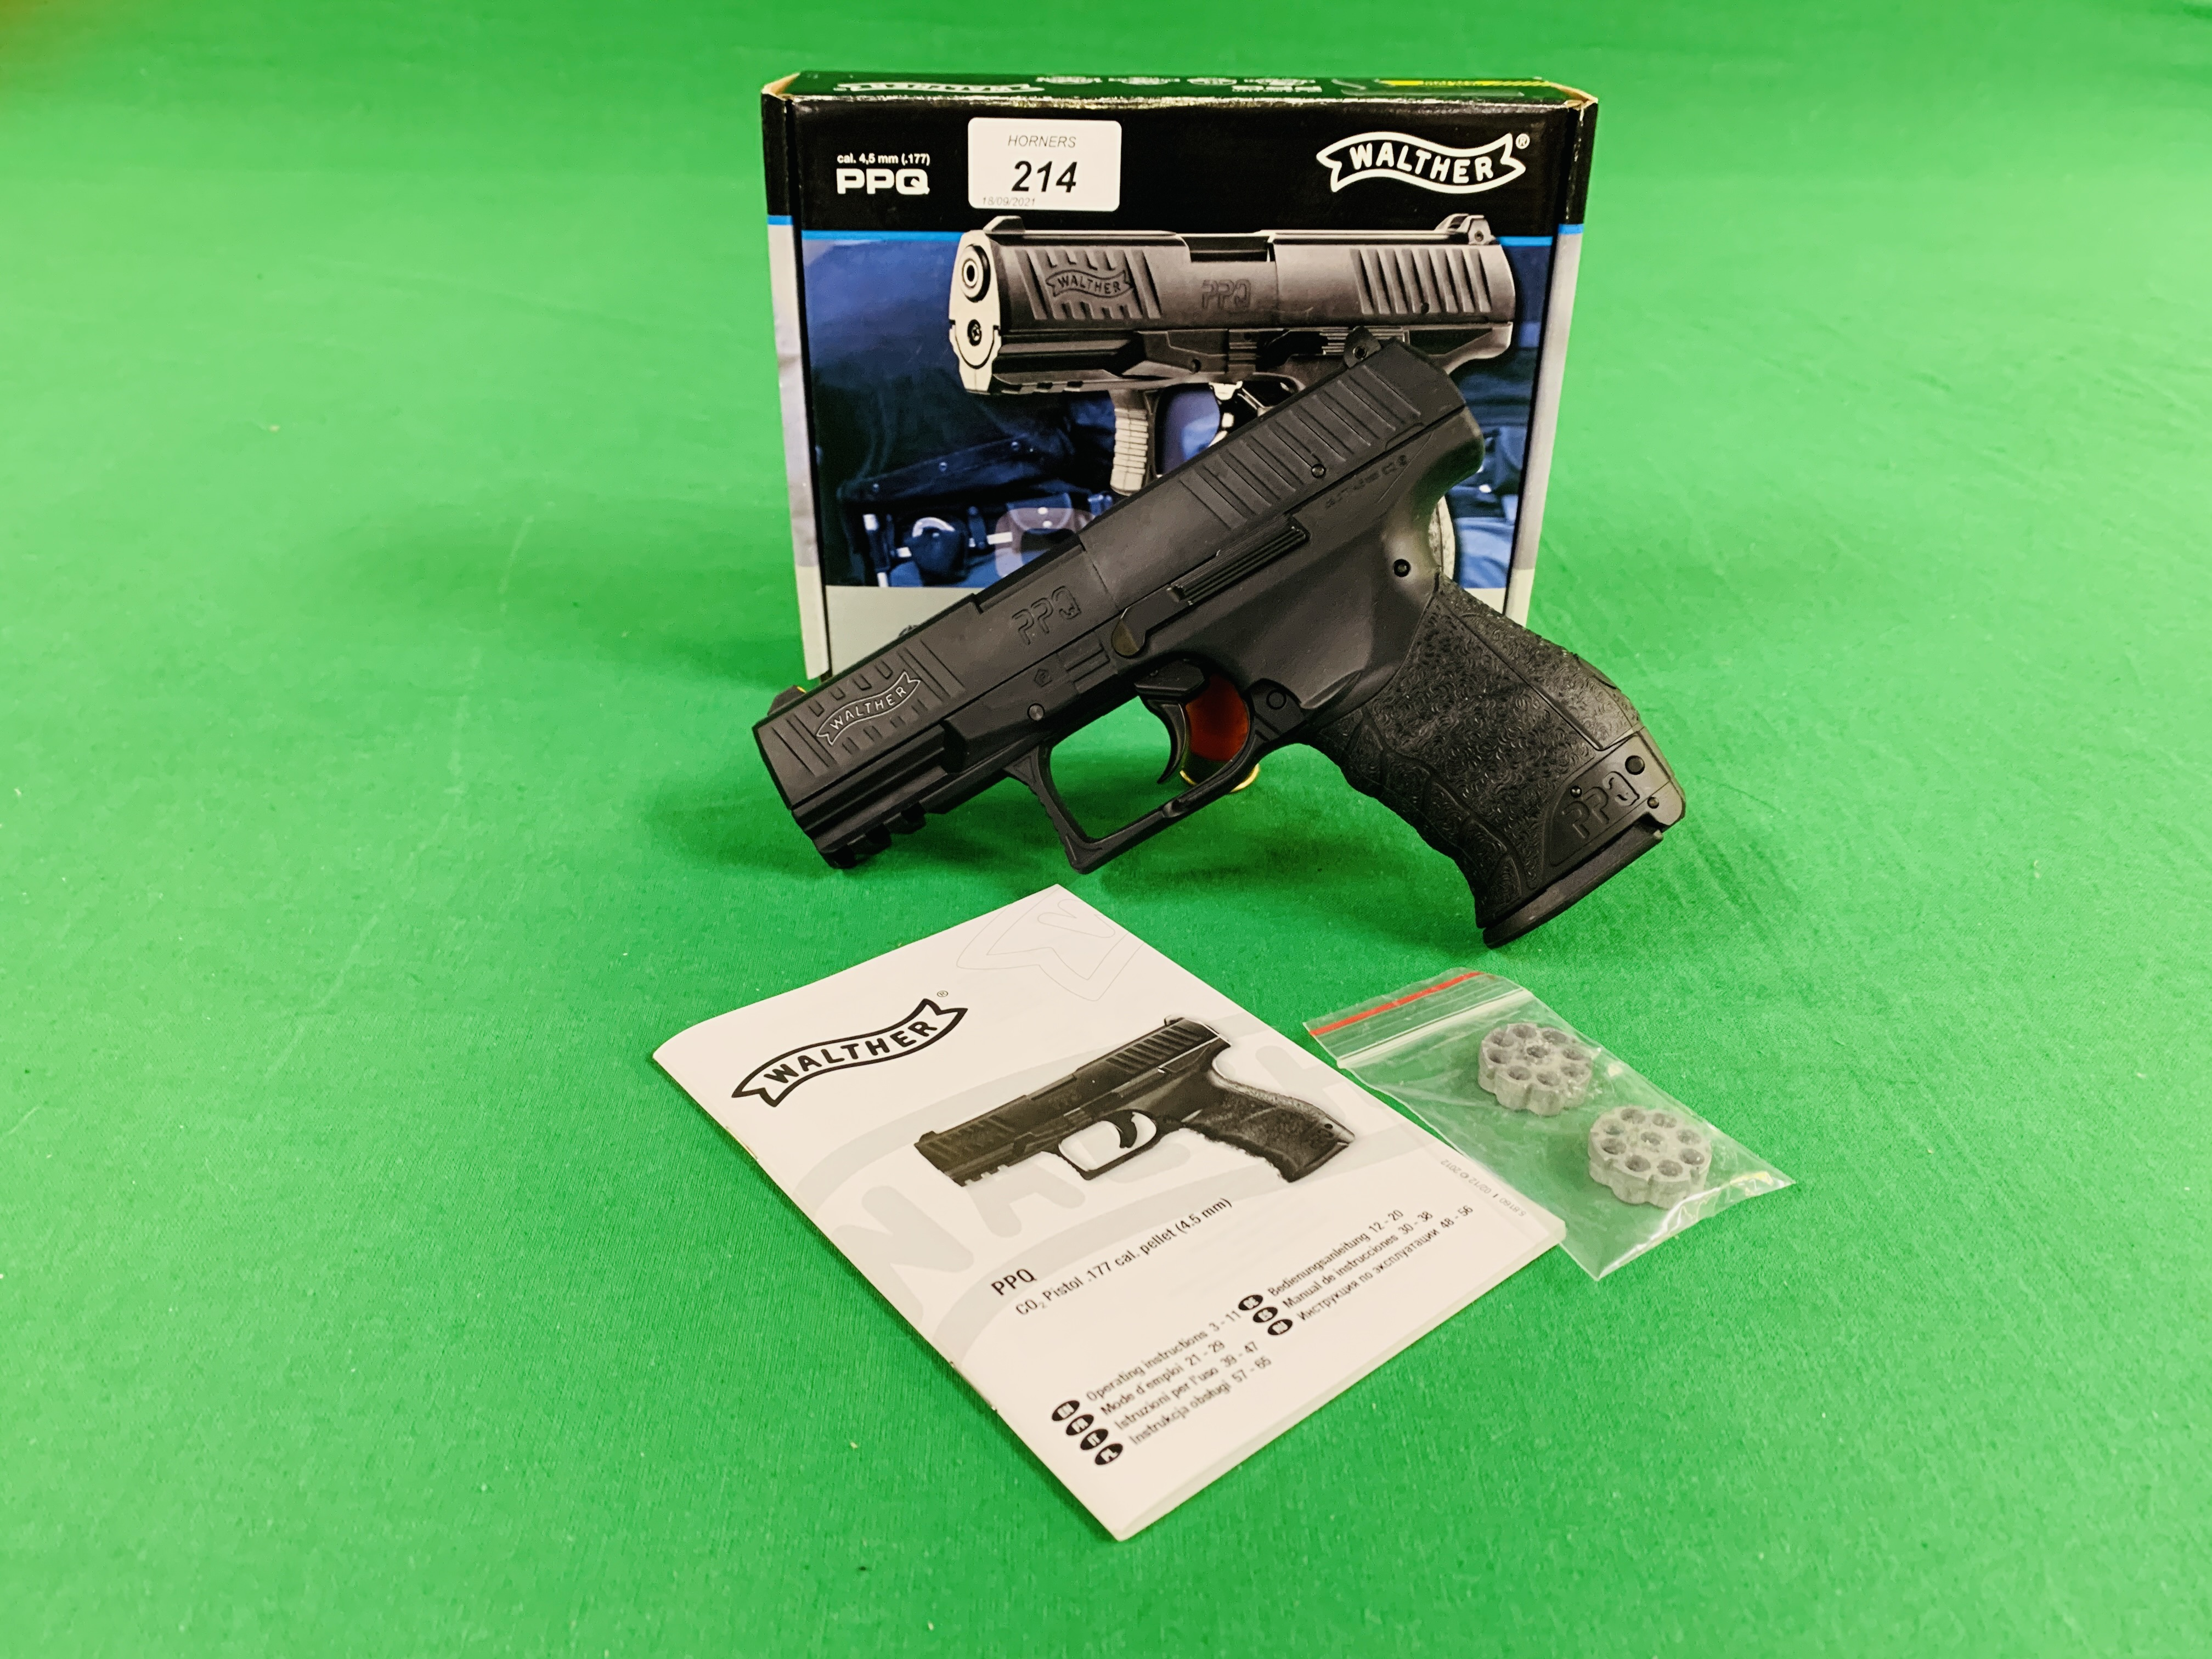 A WALTHER PPQ .